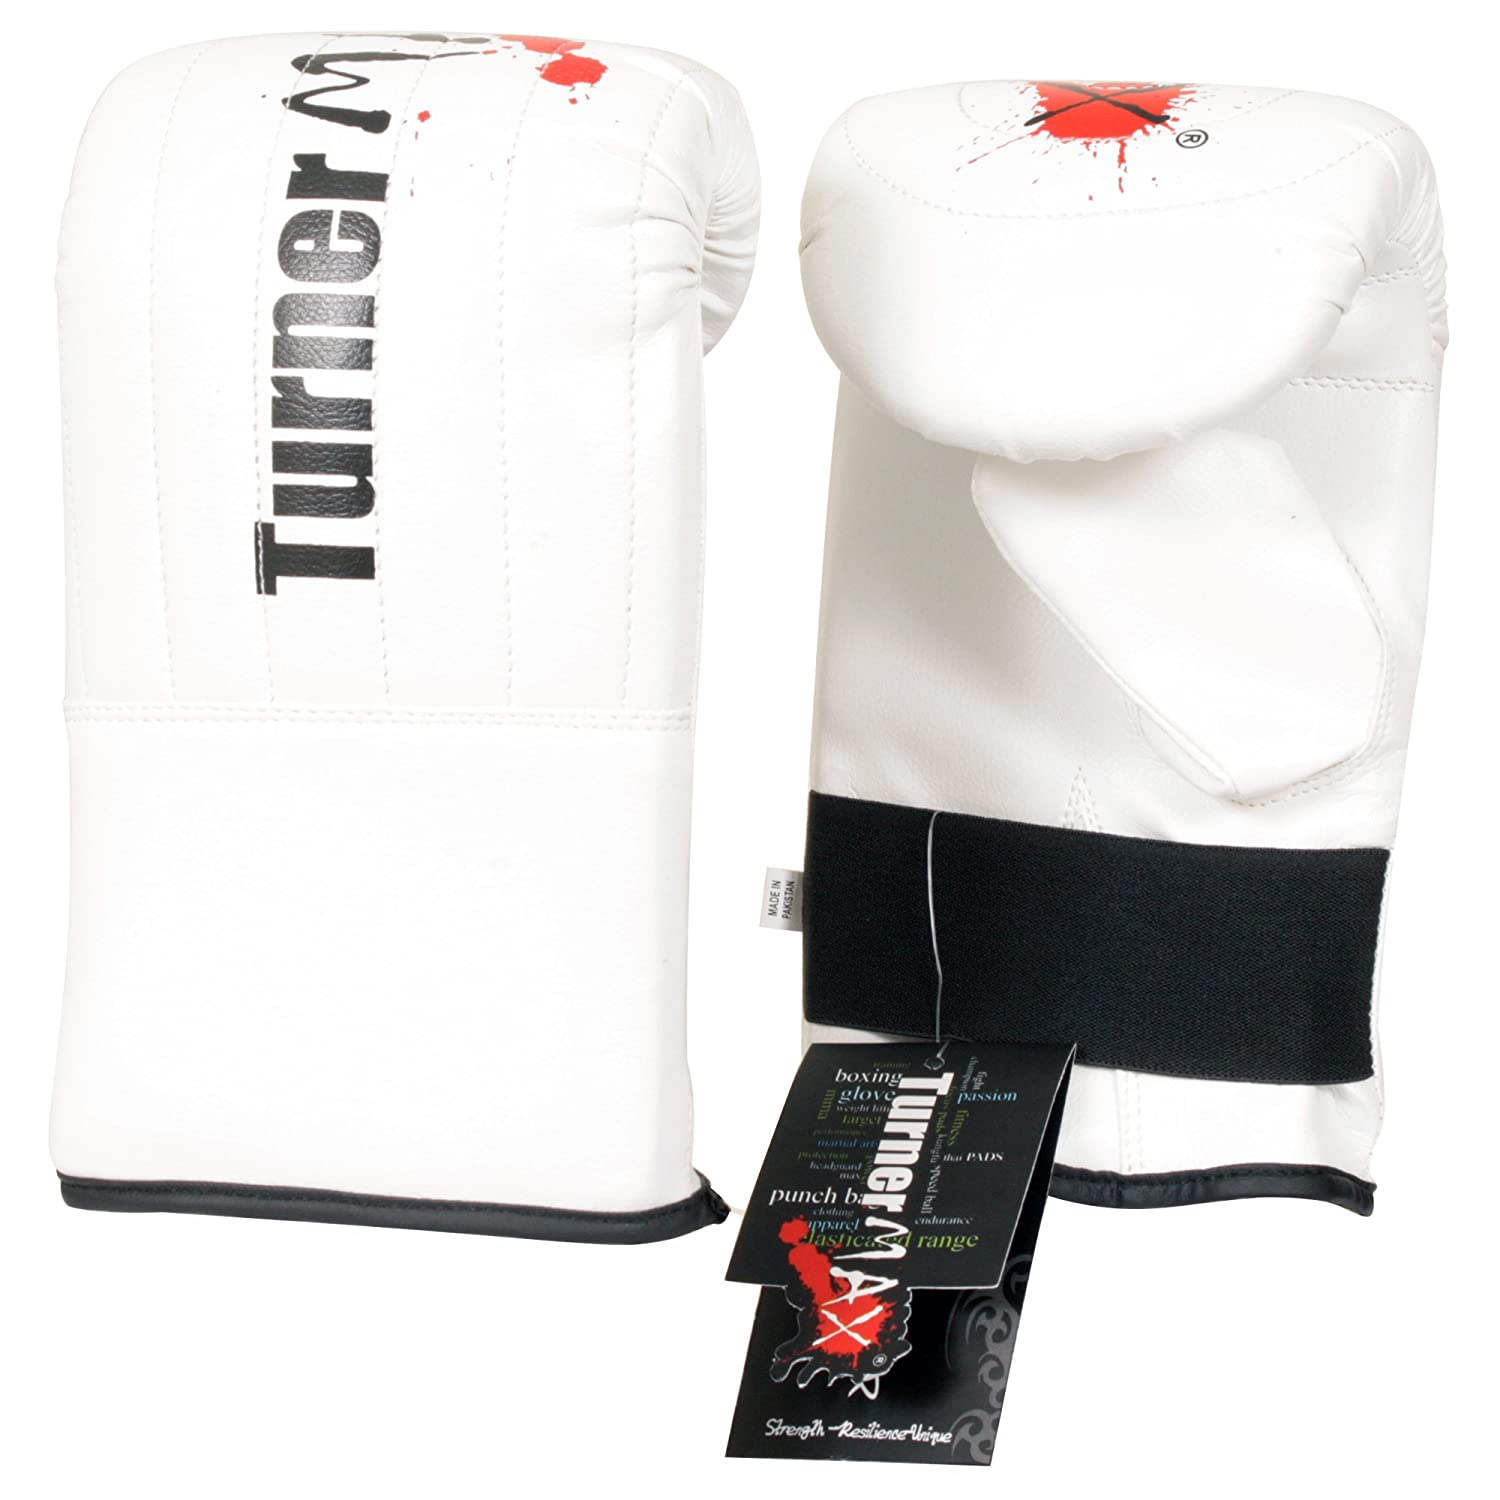 TurnerMAX Synthetic Leather Bag Mitts Glove MMA Fight Training Gym Exercise Punching Punch Mitts Small//Medium